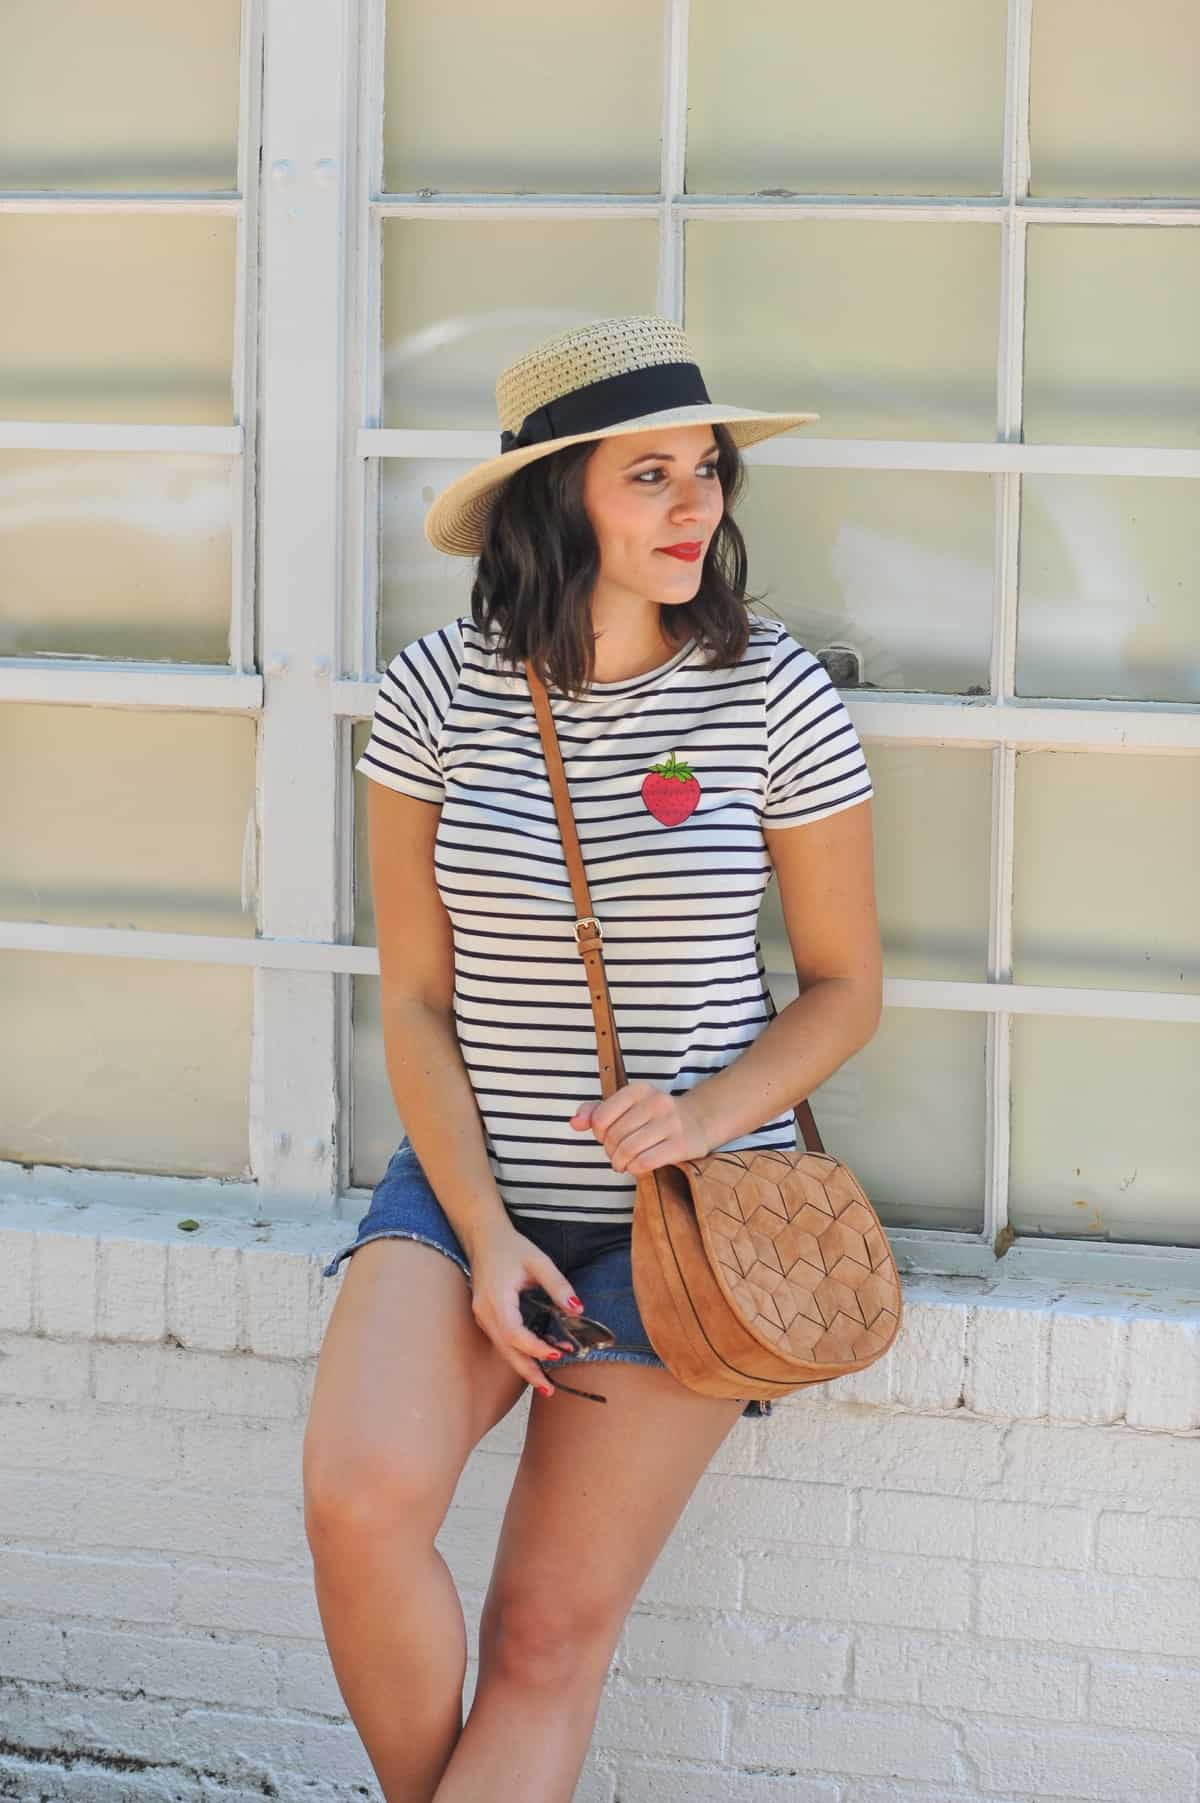 4th of july outfit ideas, striped tee outfits - @mystylevita - 7